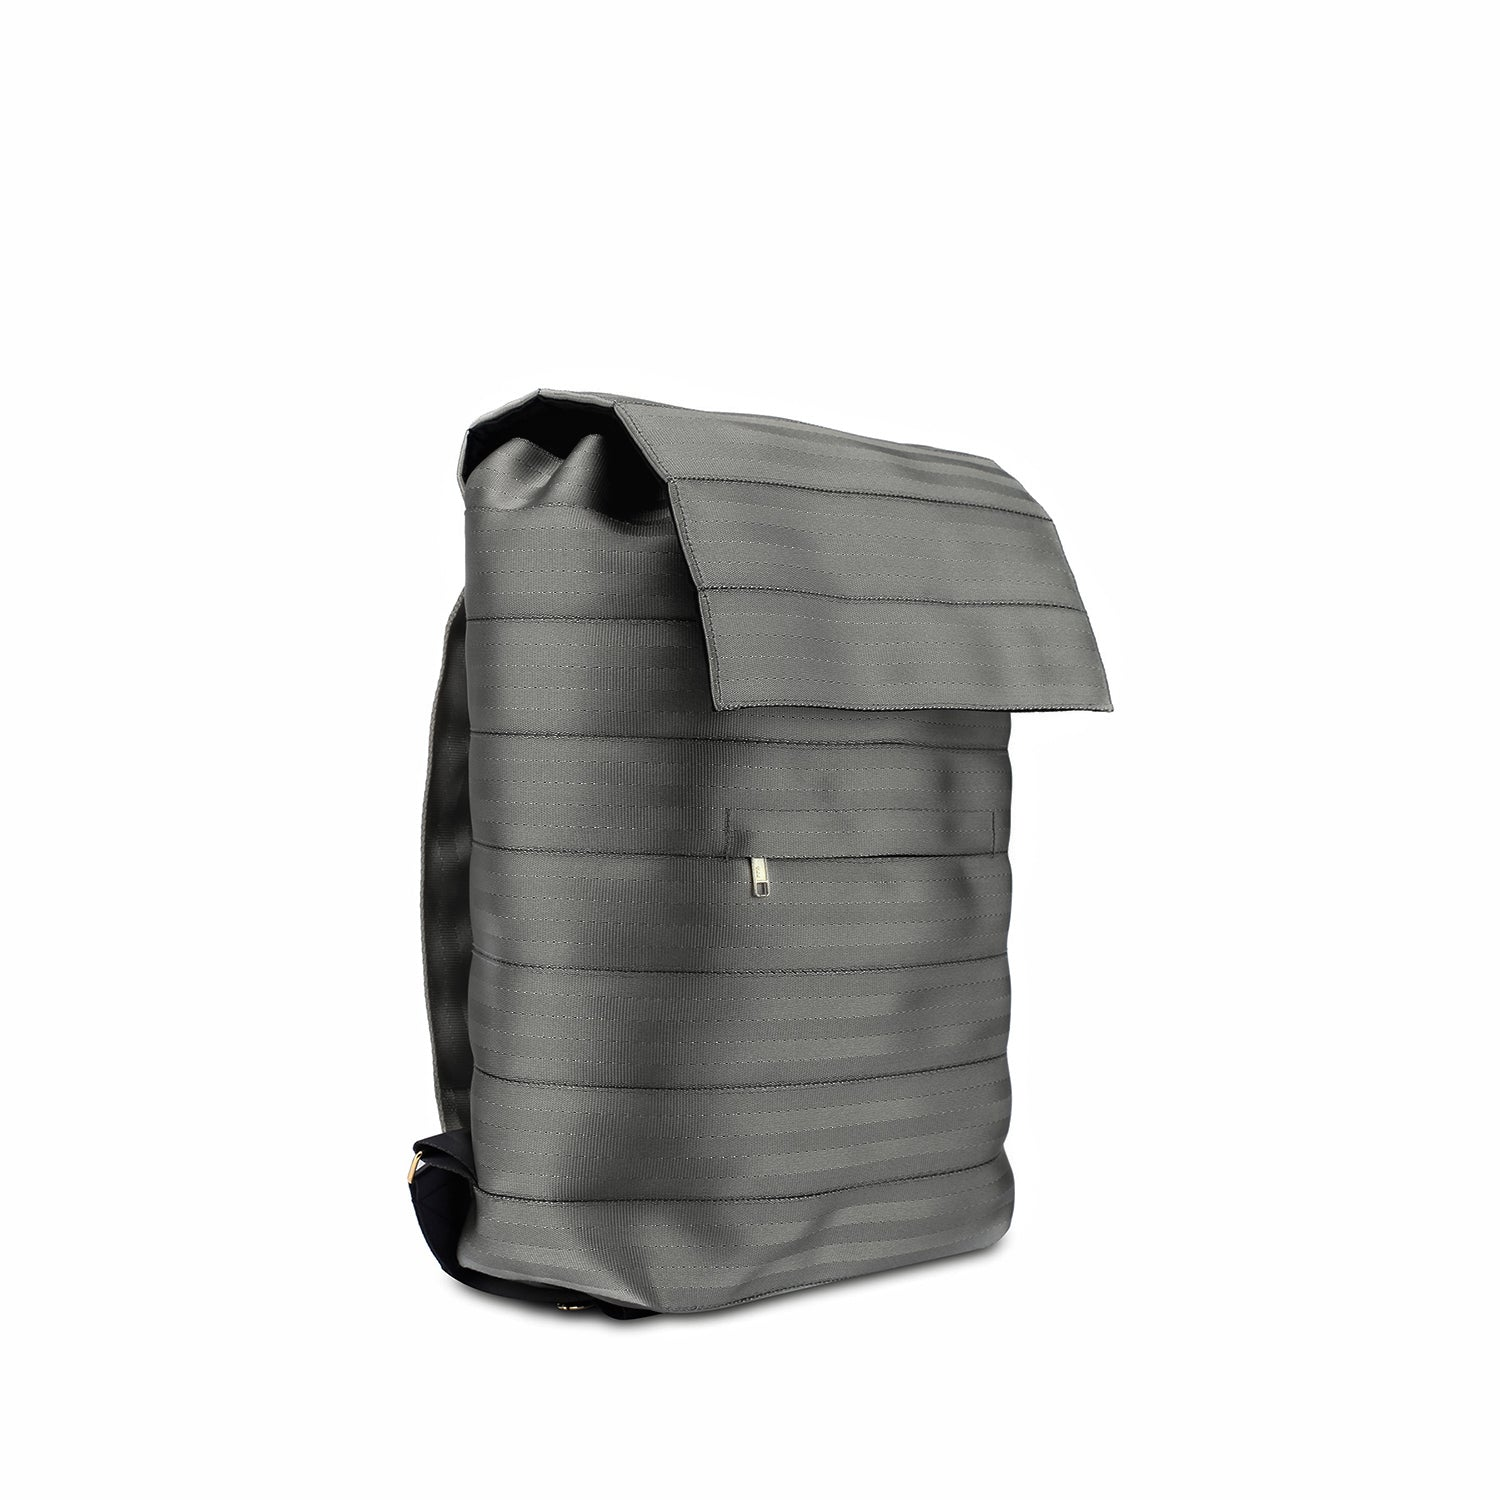 Daffodil Eco-Friendly Seatbelt Vegan Backpack (2 Colours Available) by Paguro Upcycle